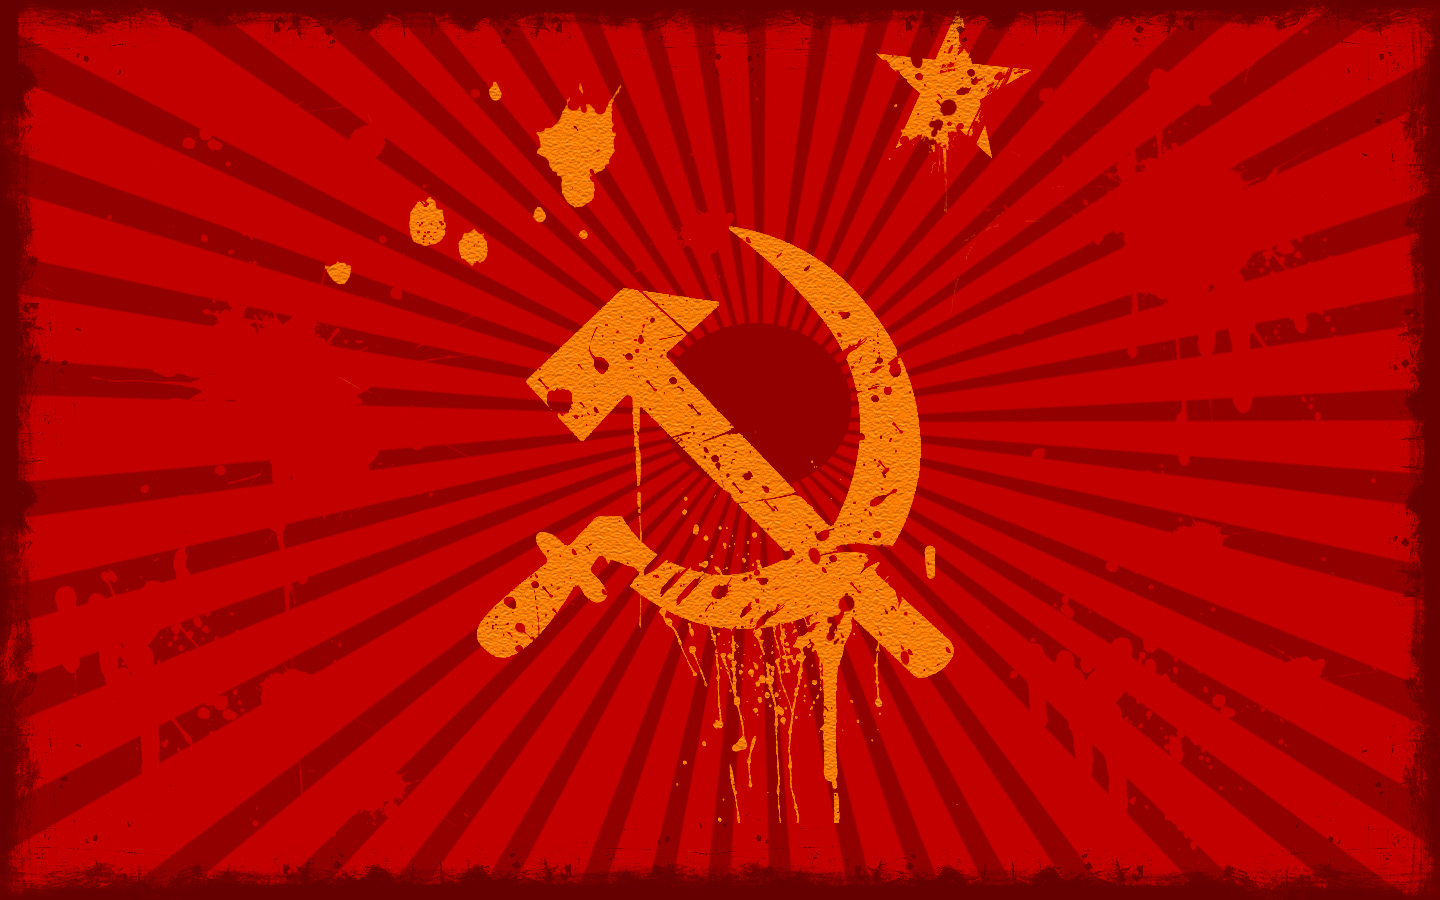 Soviet grunge wallpaper by robin0999 on deviantart - Ussr wallpaper ...